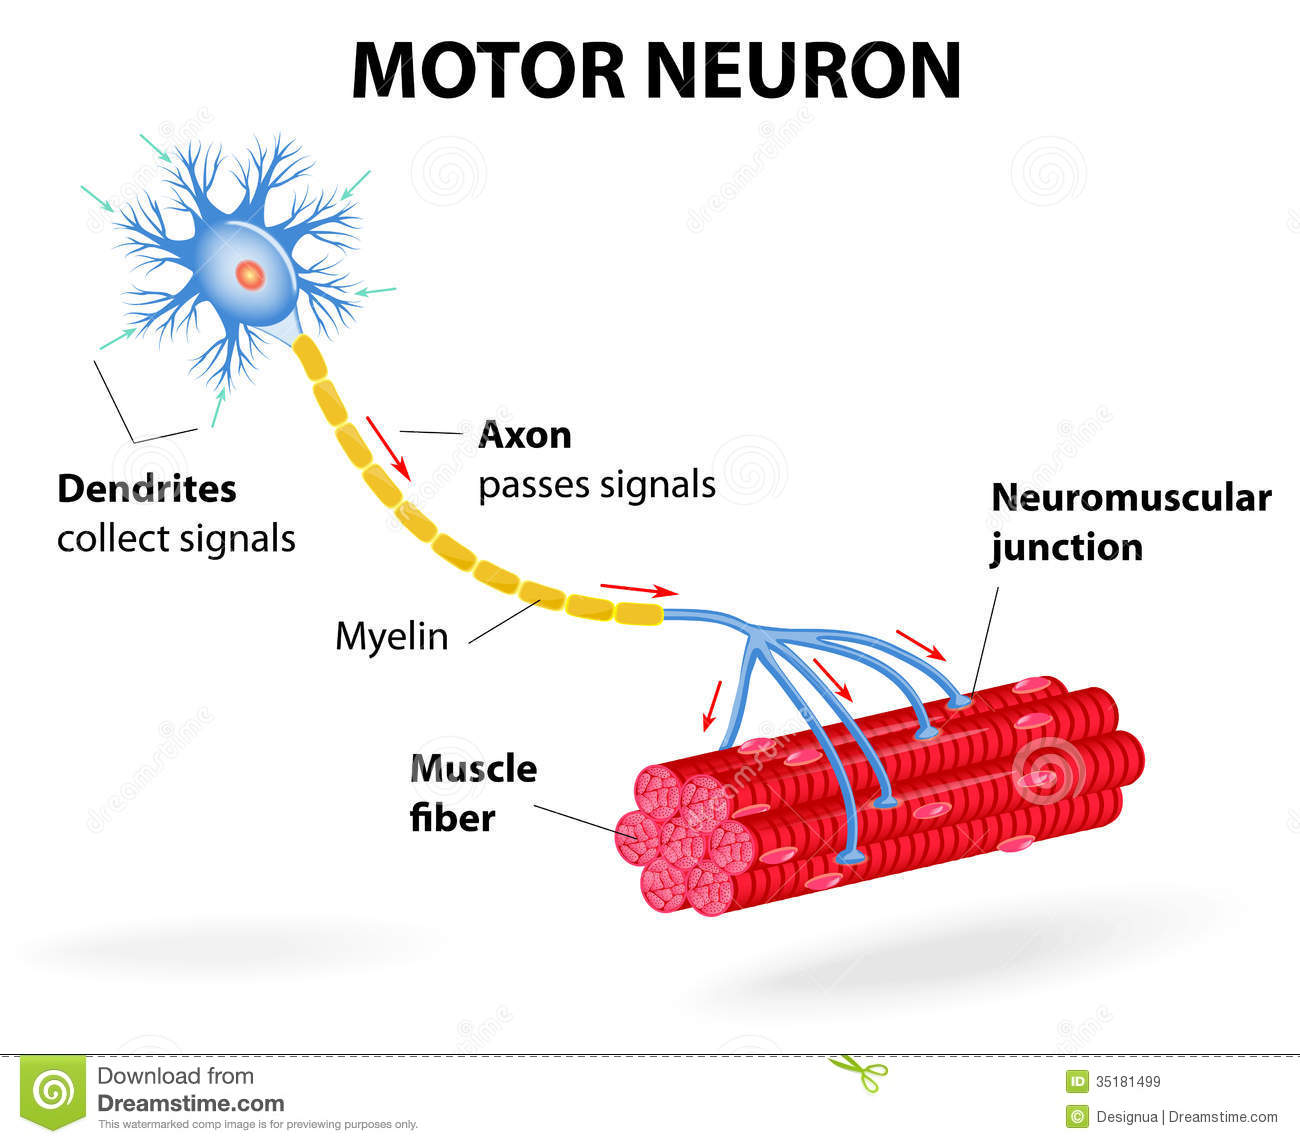 Diagram of Motor Neuron